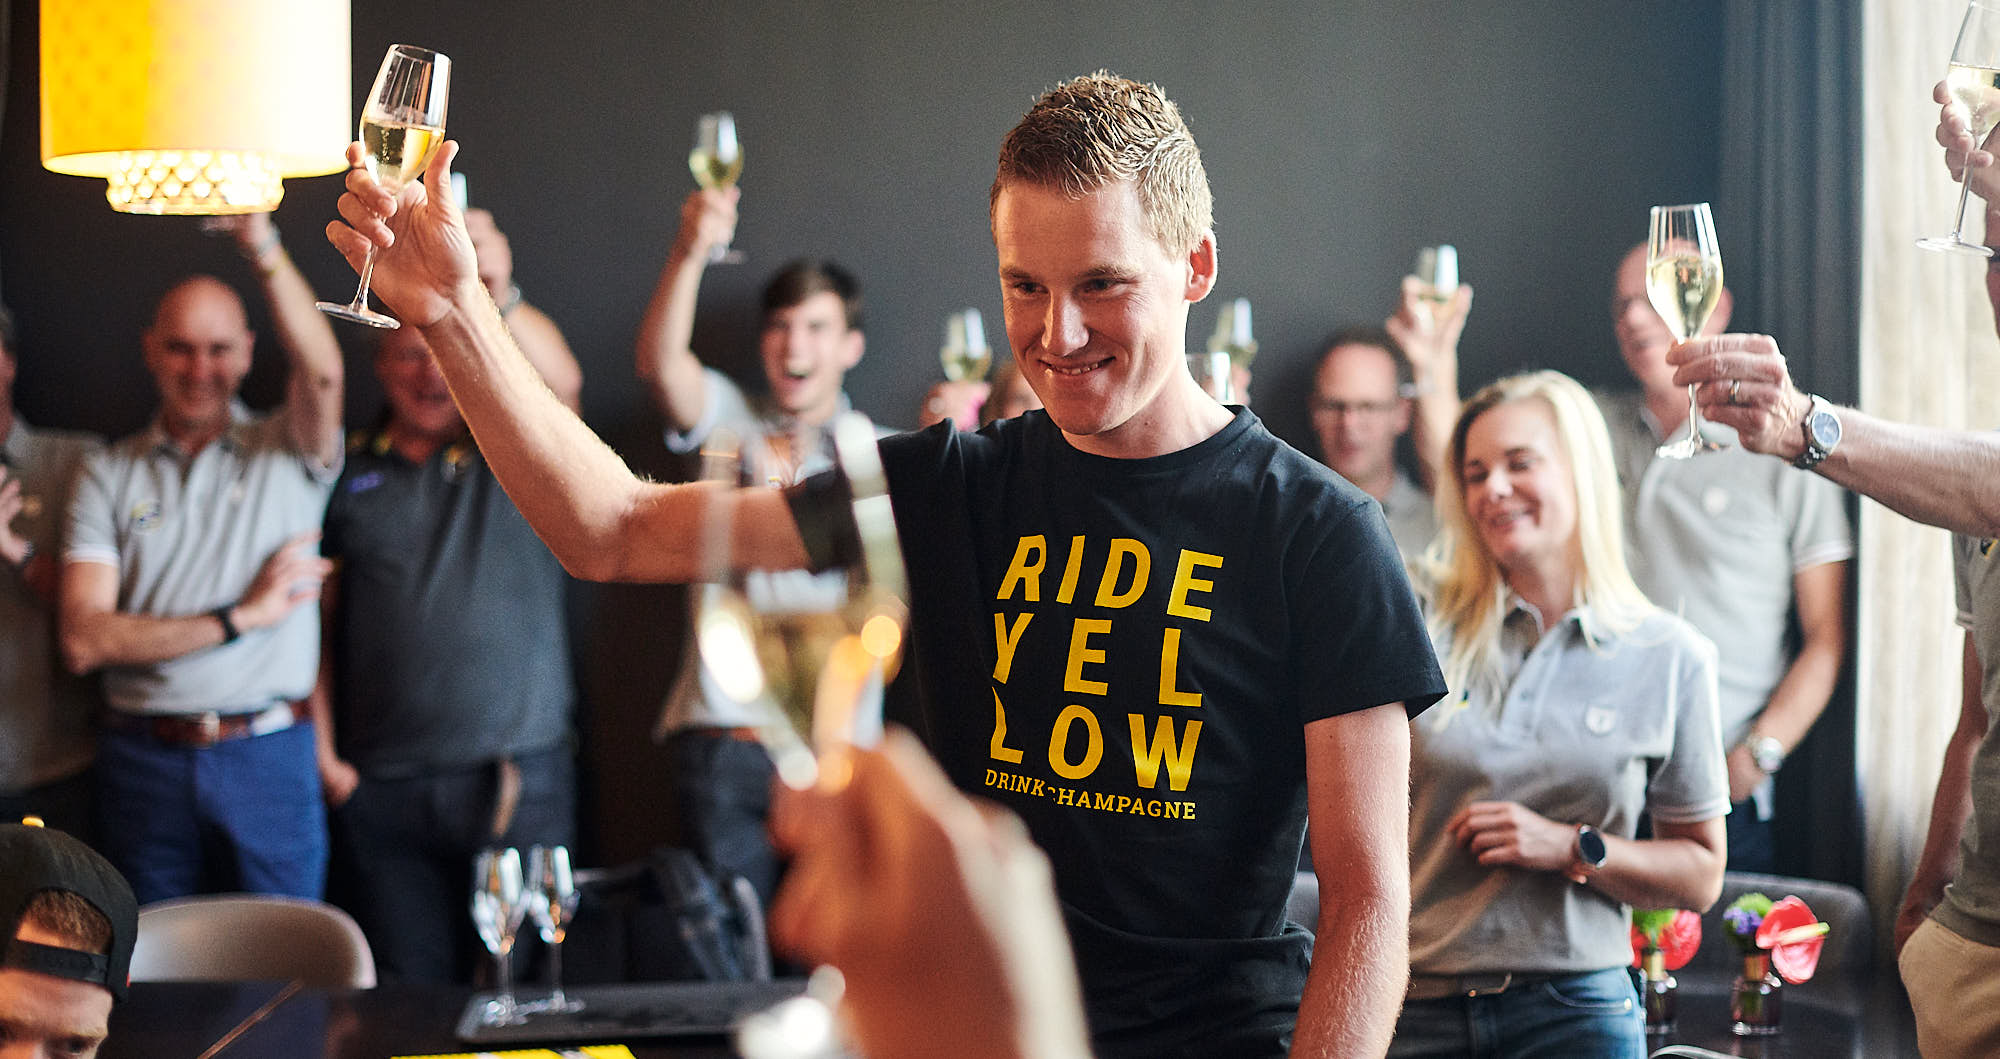 Mike Teunissen raising a glass of champagne after taking the yellow jersey in the Tour de France